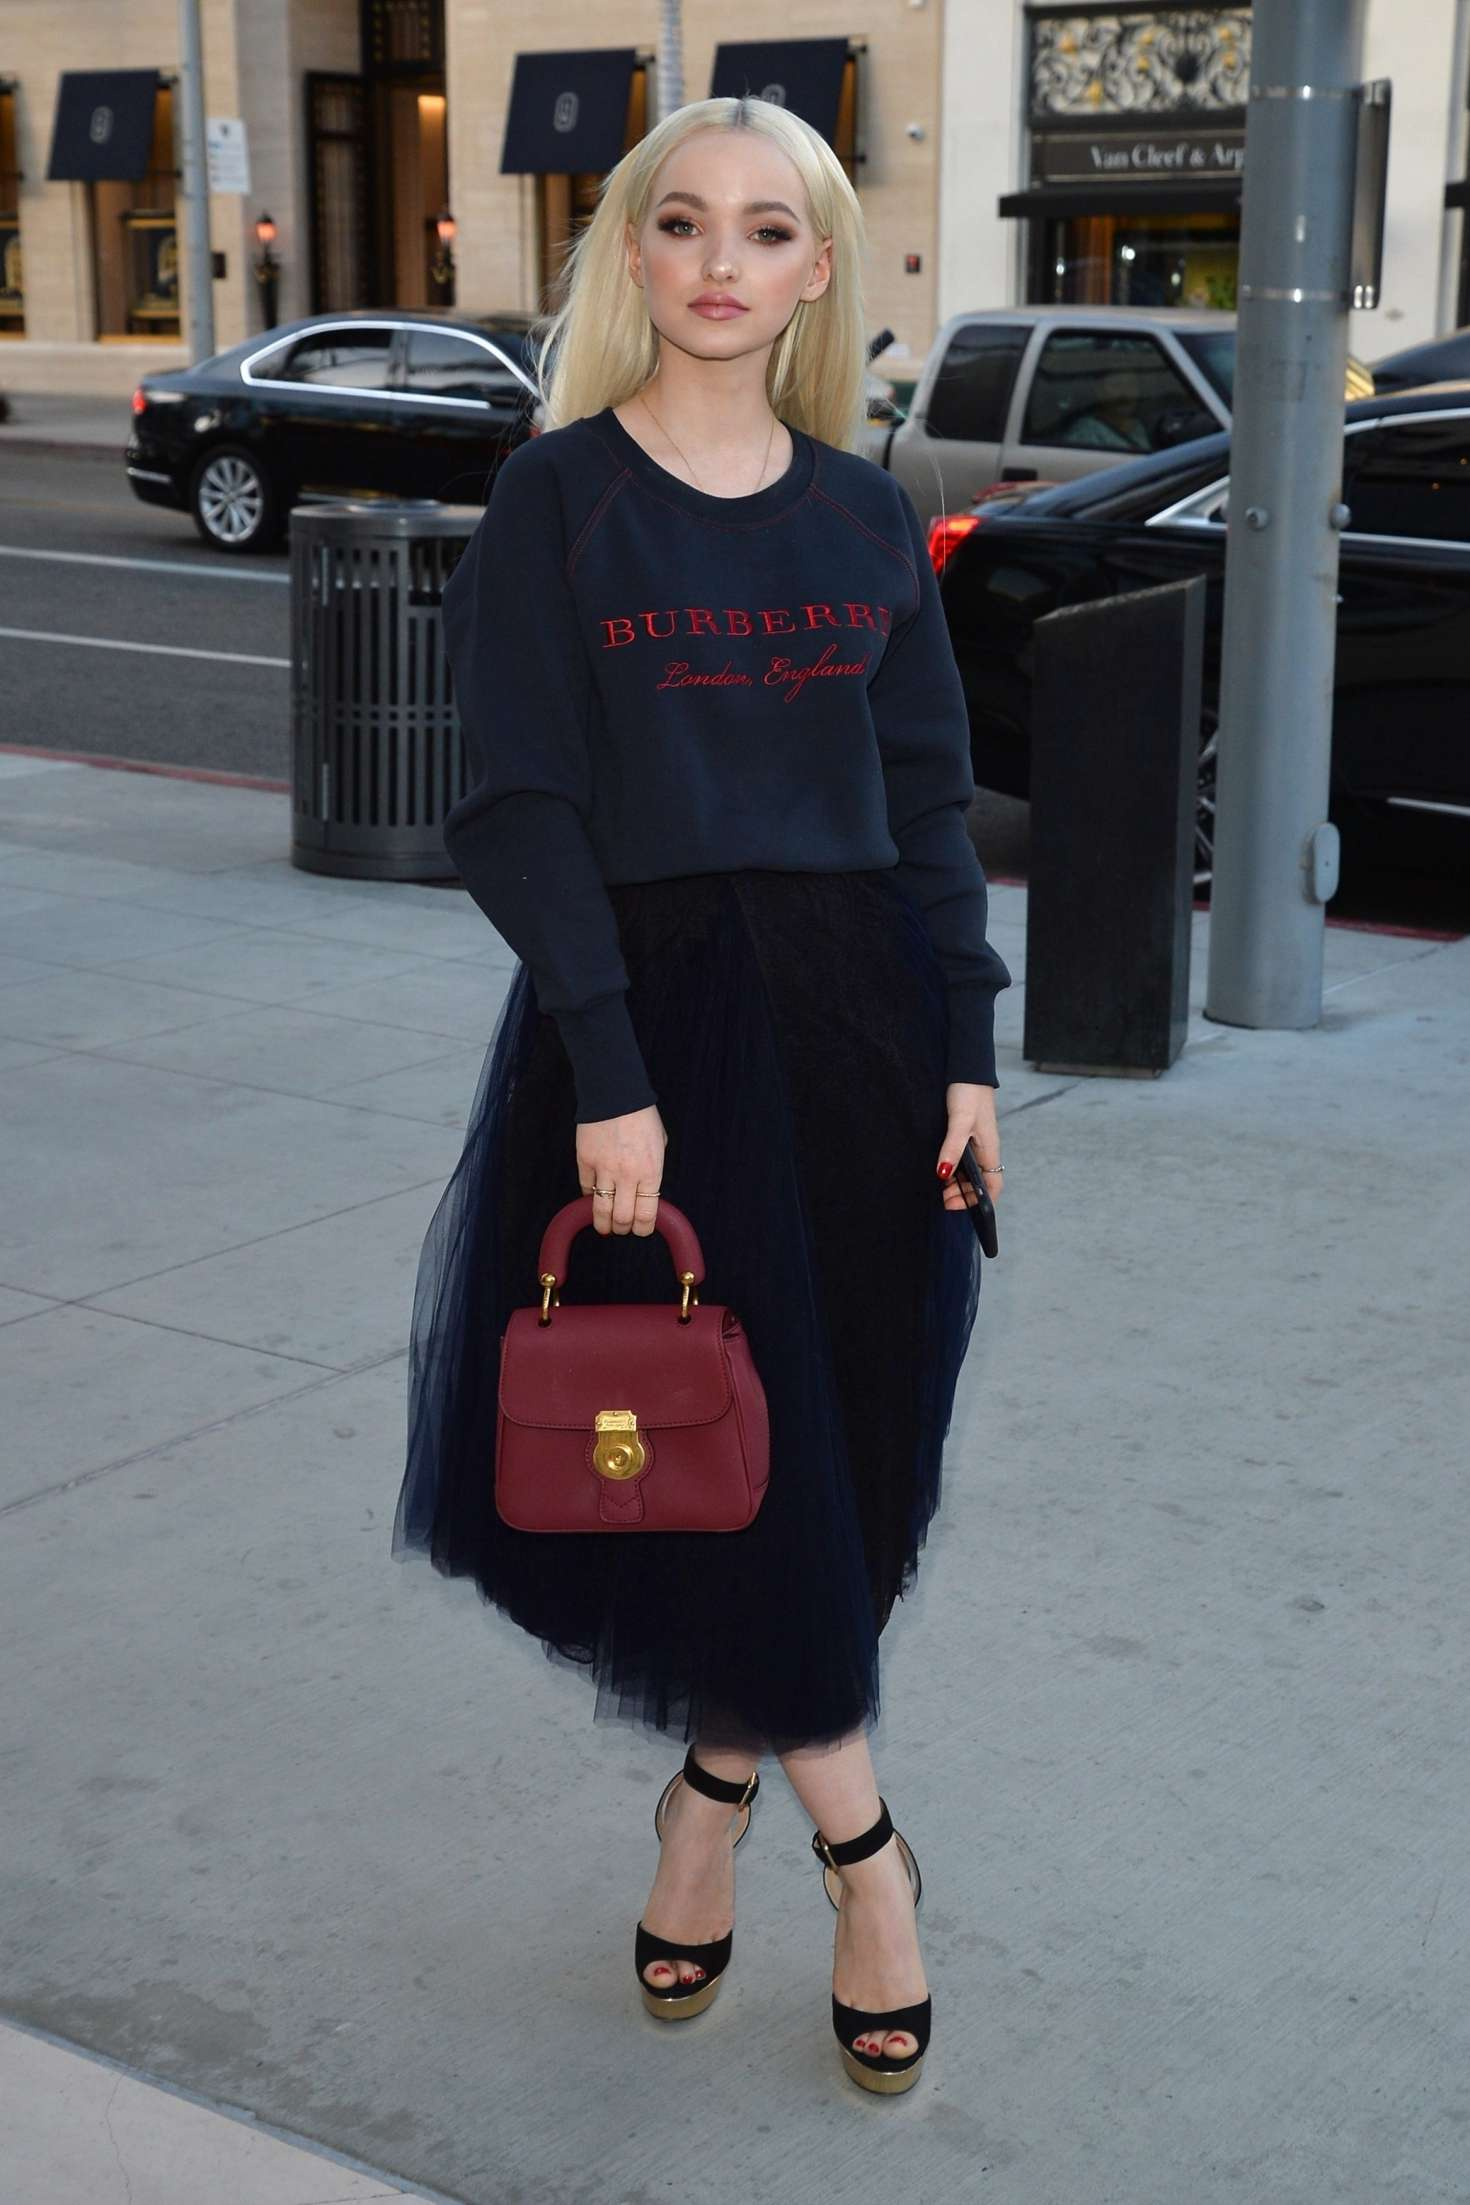 Dove Cameron 2018 : Dove Cameron: Arrives at a party at the Rodeo Drive Burberry store -02